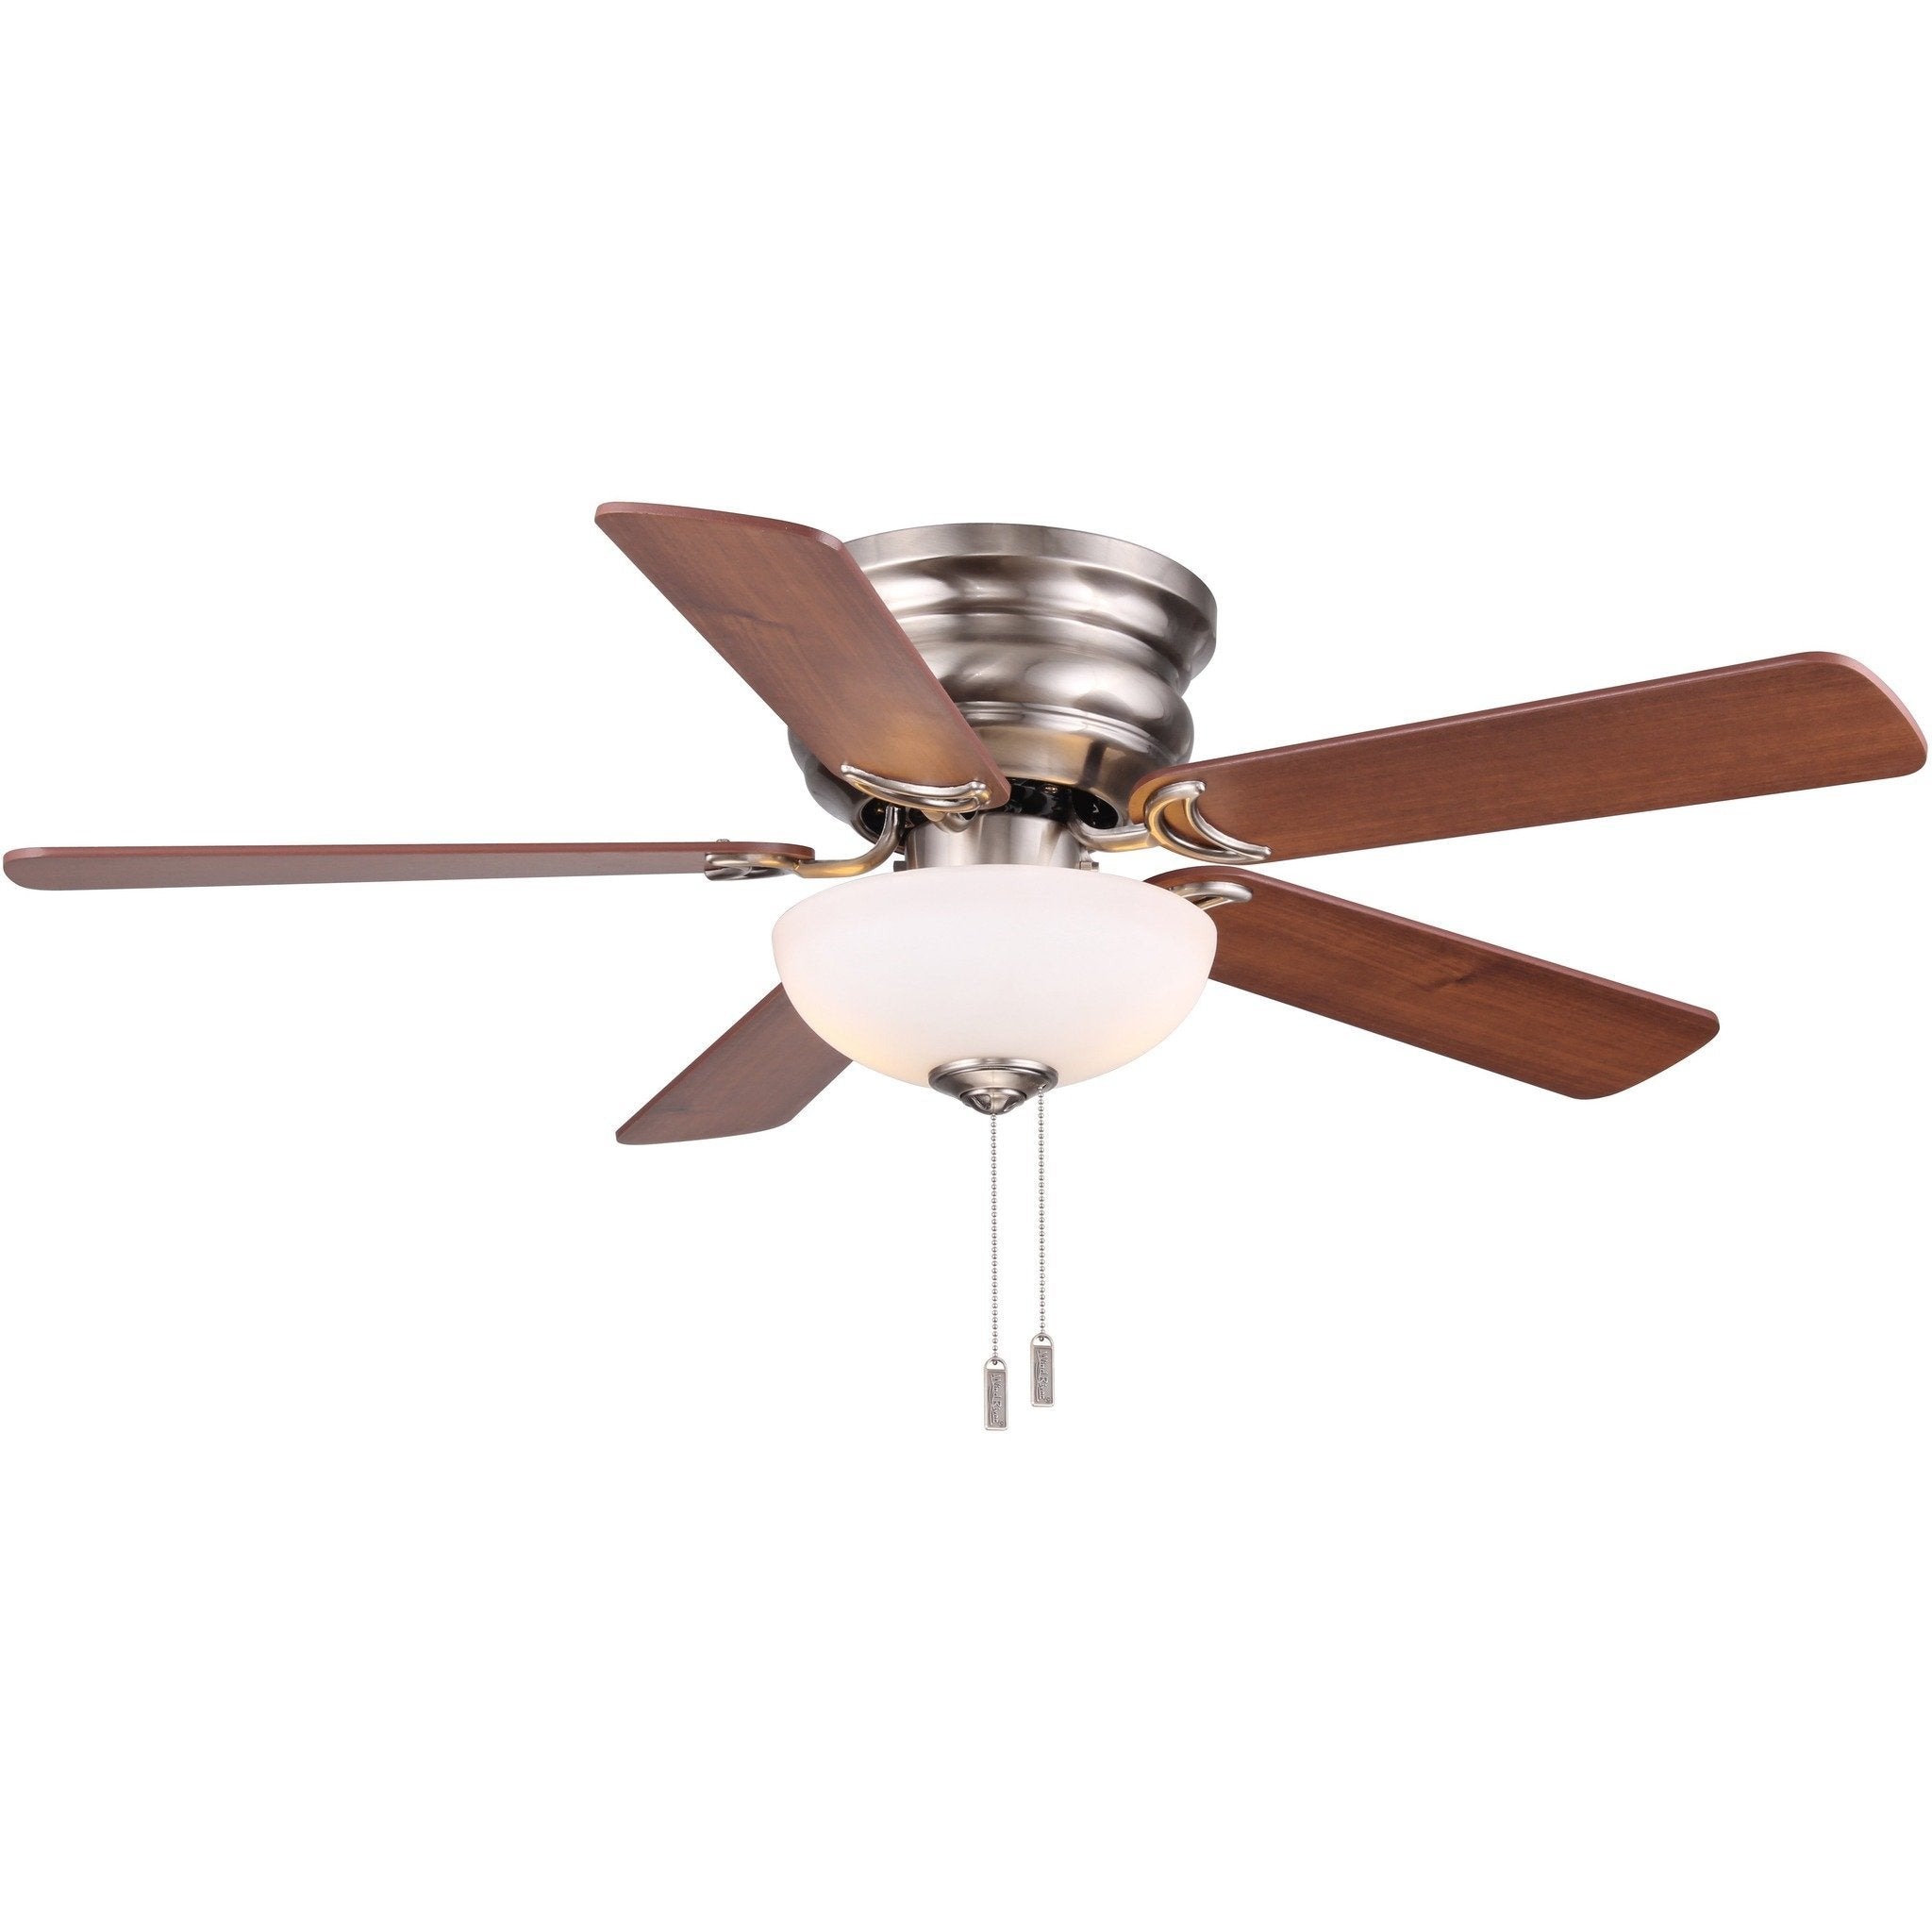 Wind River Frisco Ceiling Fan